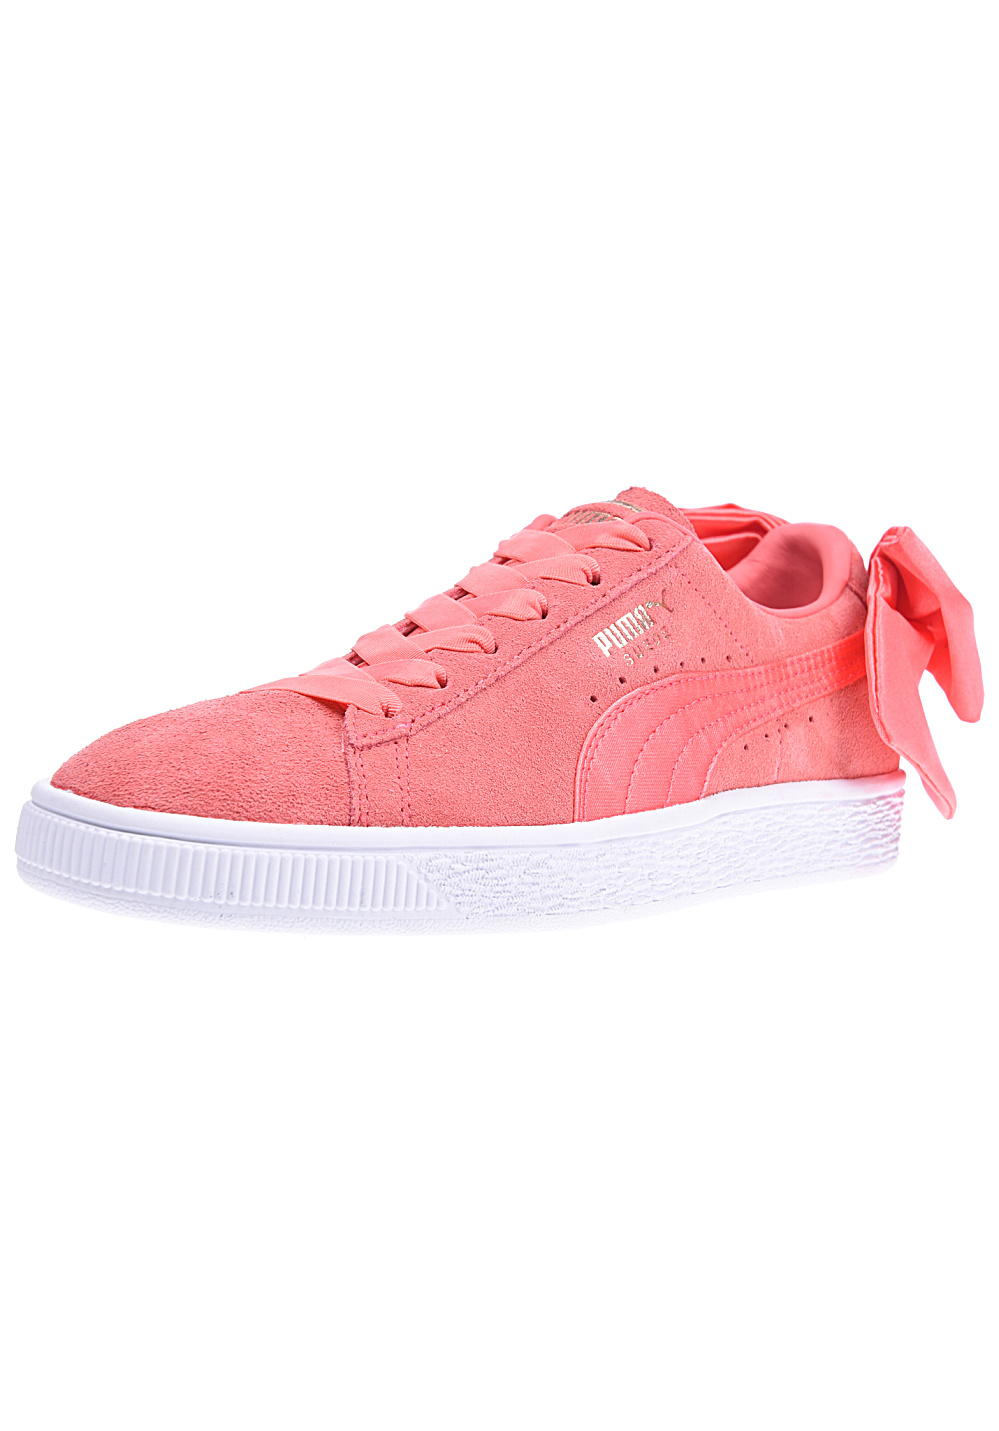 d72a184b38c8 Puma Suede Bow - Sneakers for Women - Pink - Planet Sports